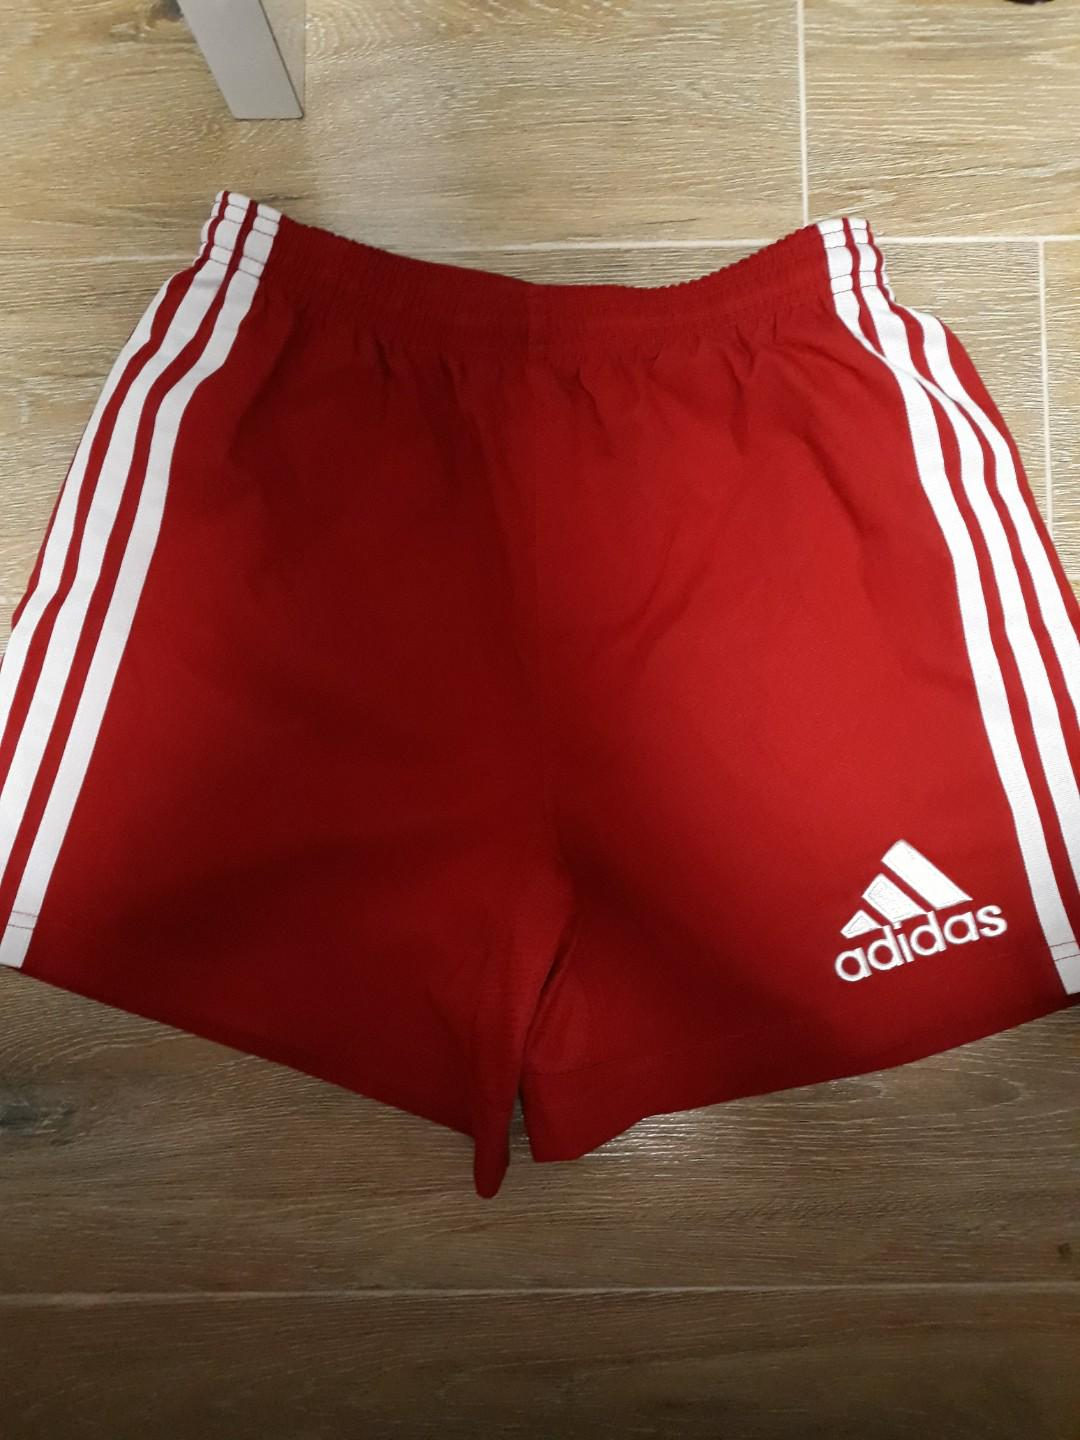 Adidas climacool Shorts, Sports, Sports Apparel on Carousell